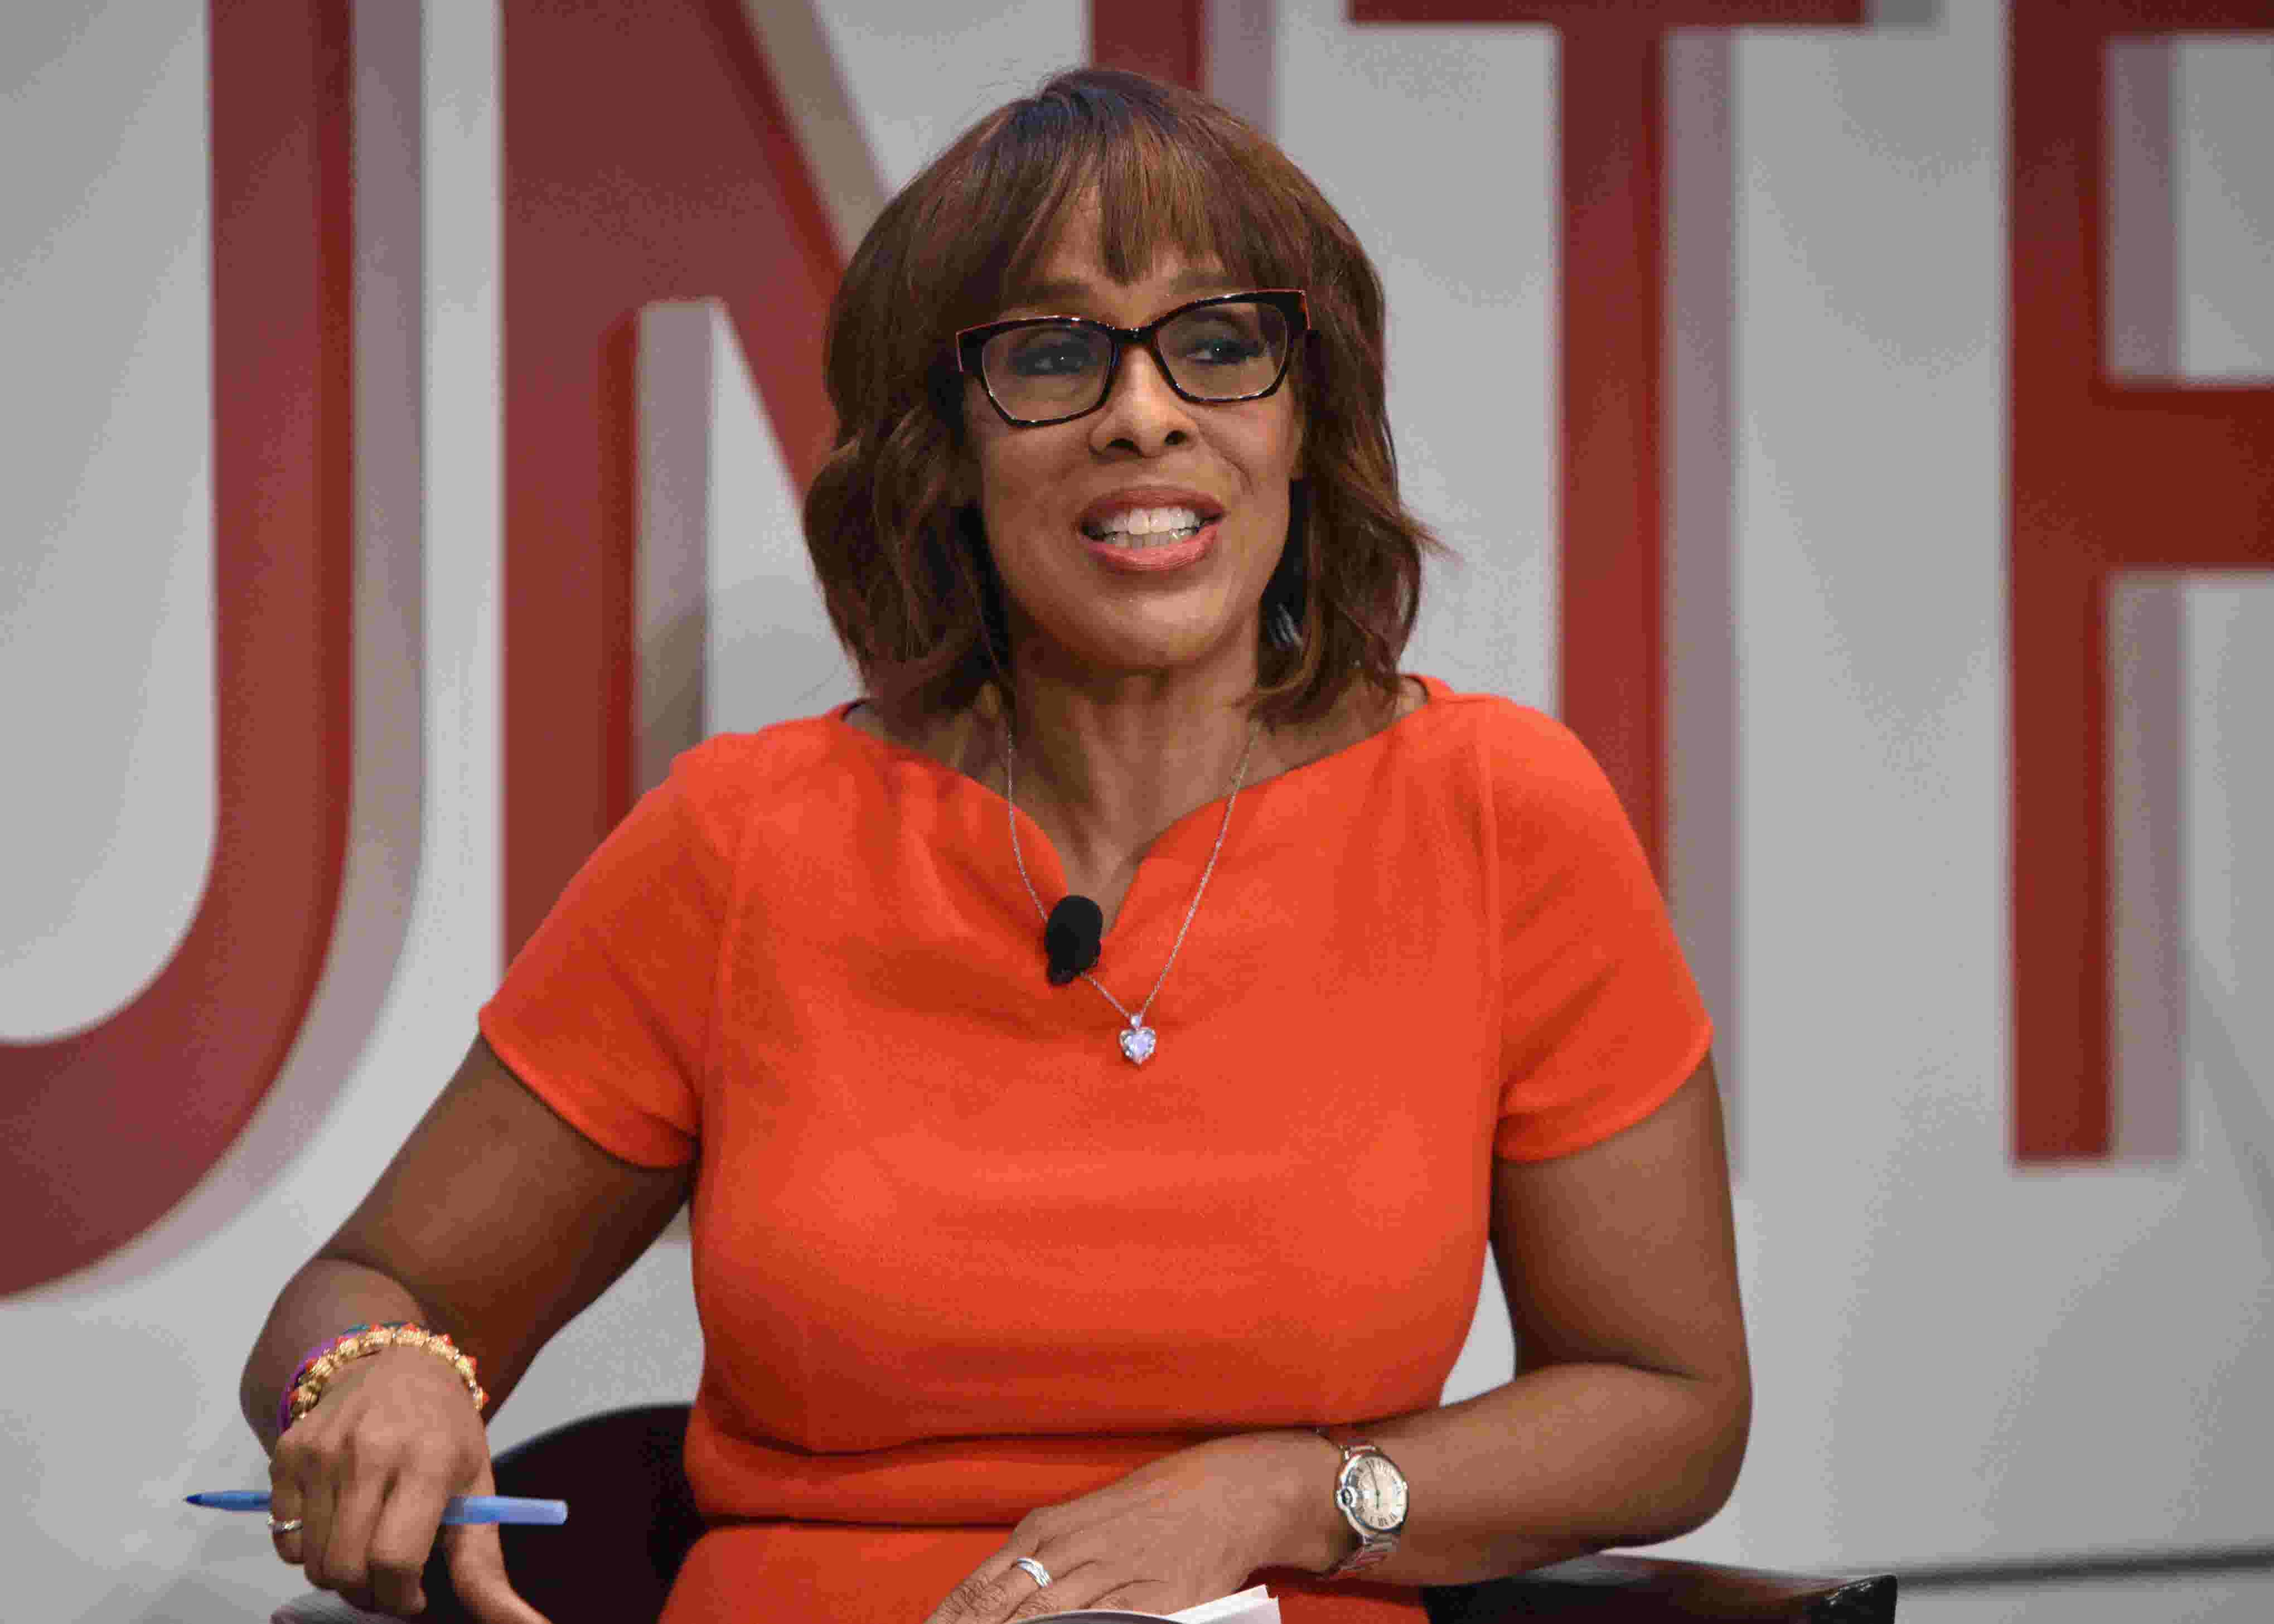 Five Questions with Gayle King